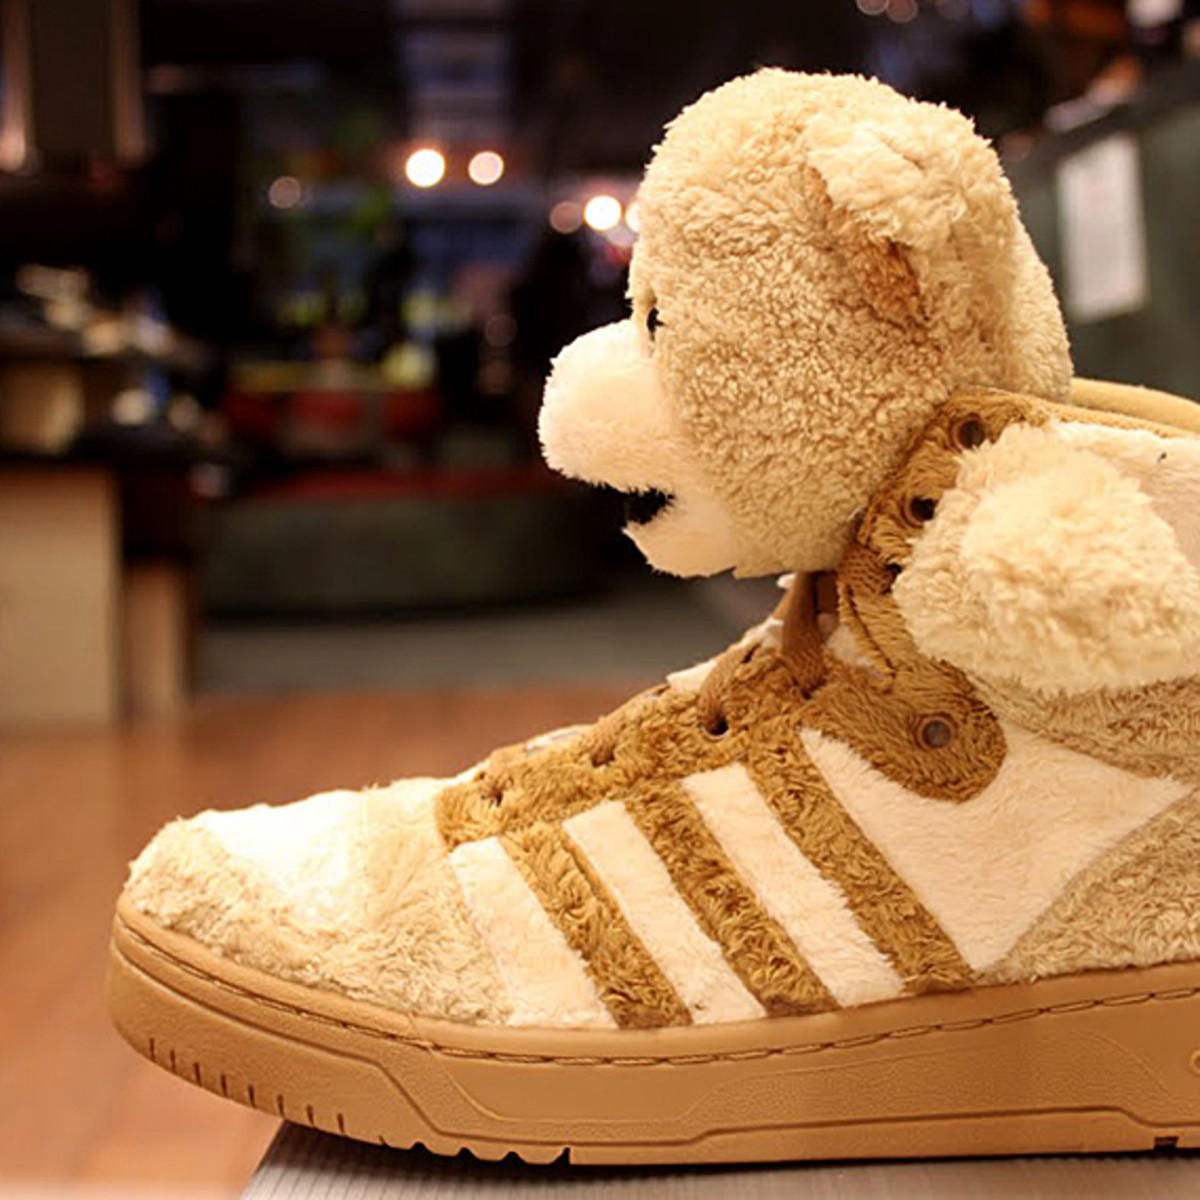 adidas-originals-jeremy-scott-teddy-bear-04a